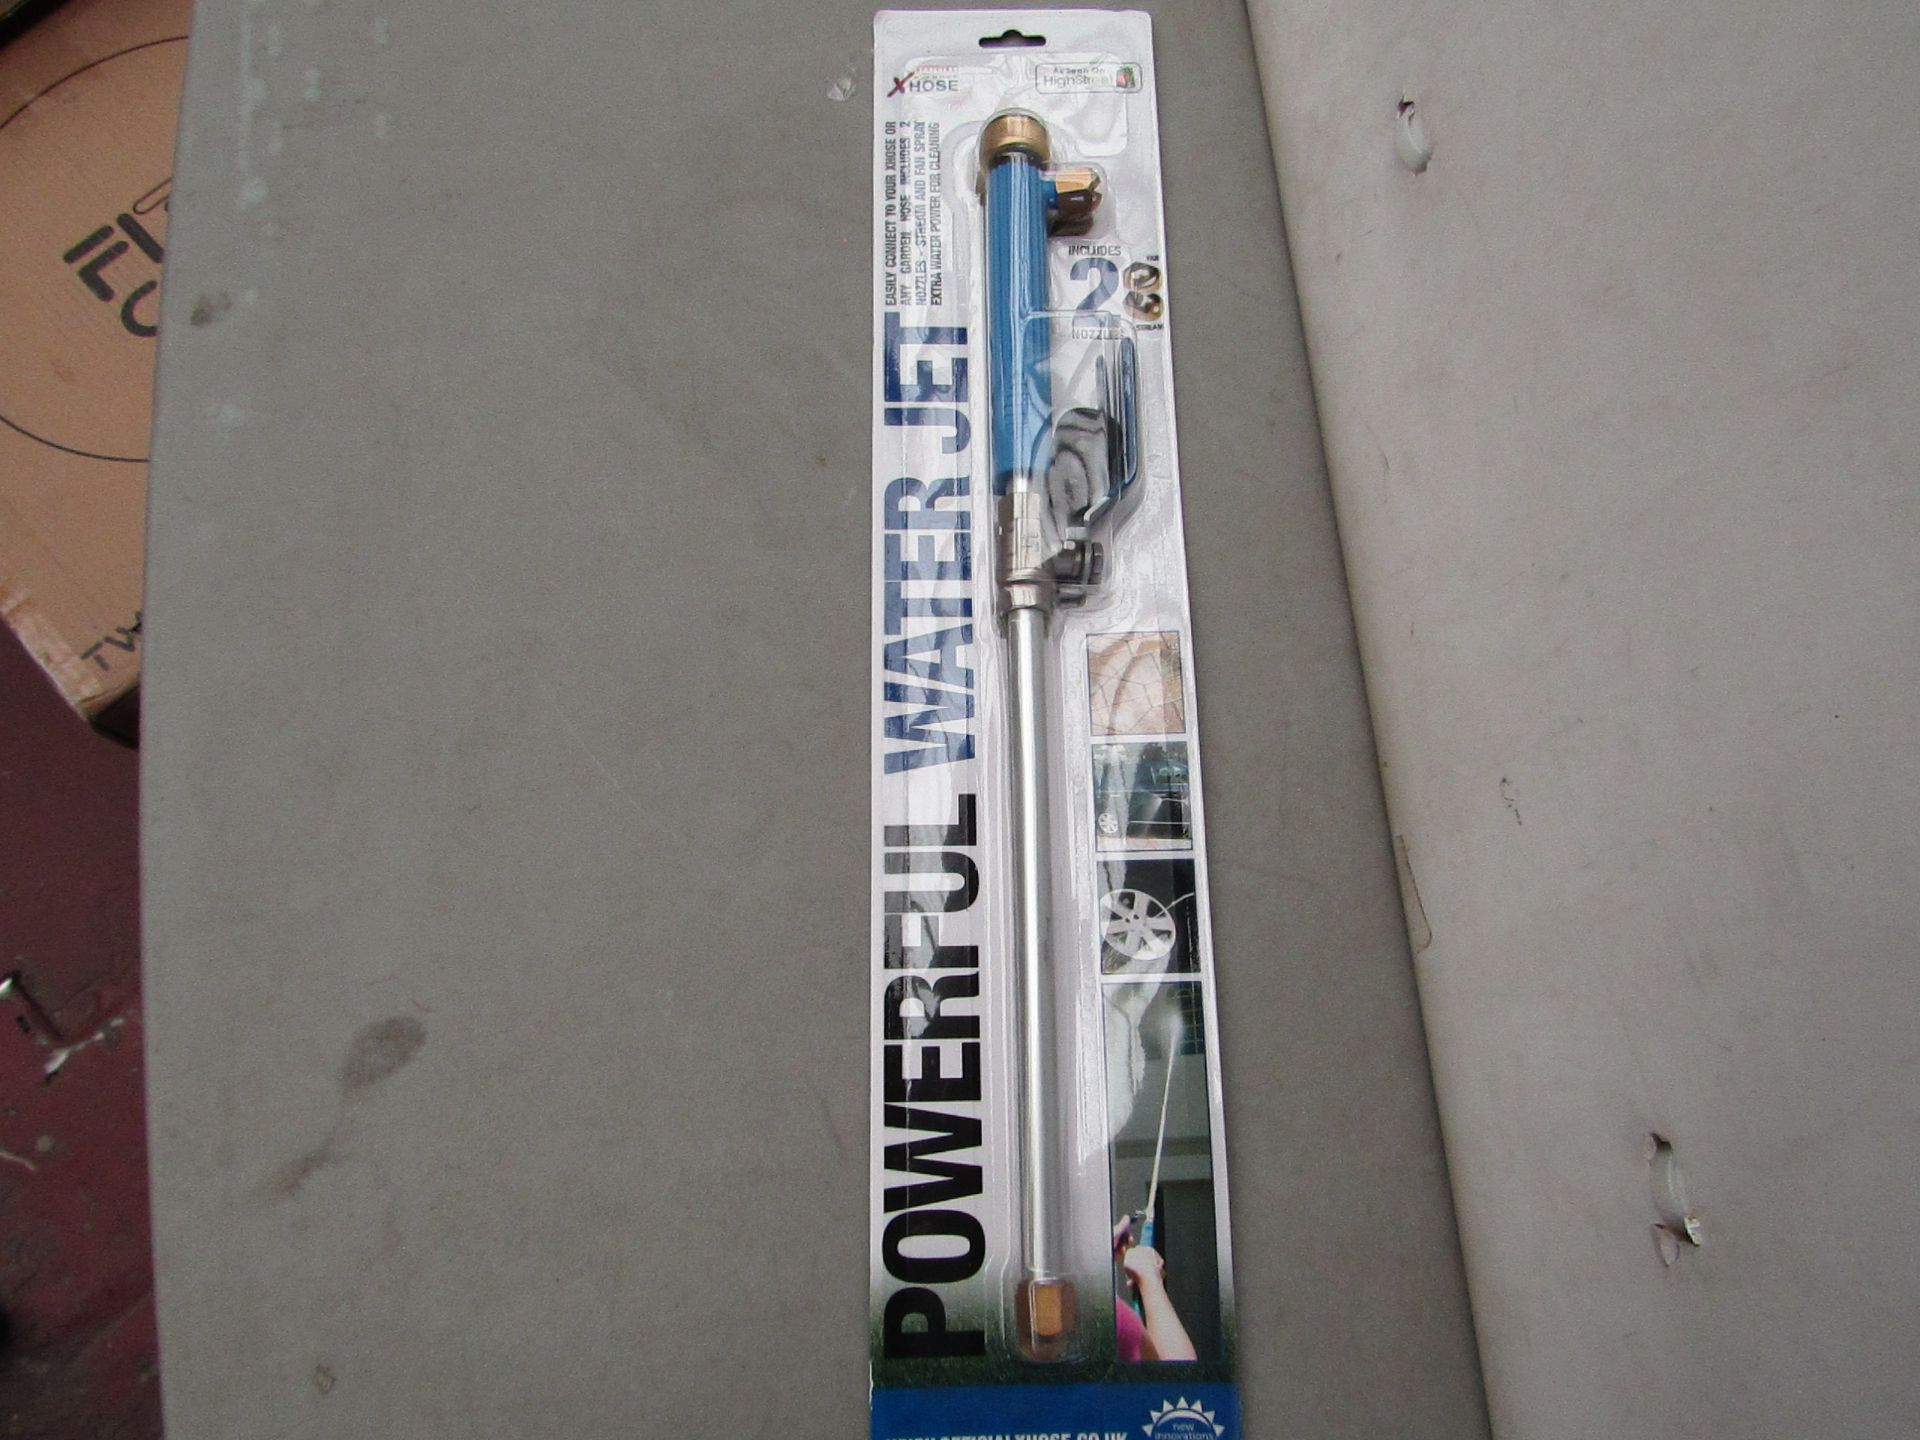 Lot 9 - | 1x | XHOSE POWERFUL WATER JET ACCESSORY | NEW | NO ONLINE RESALE |